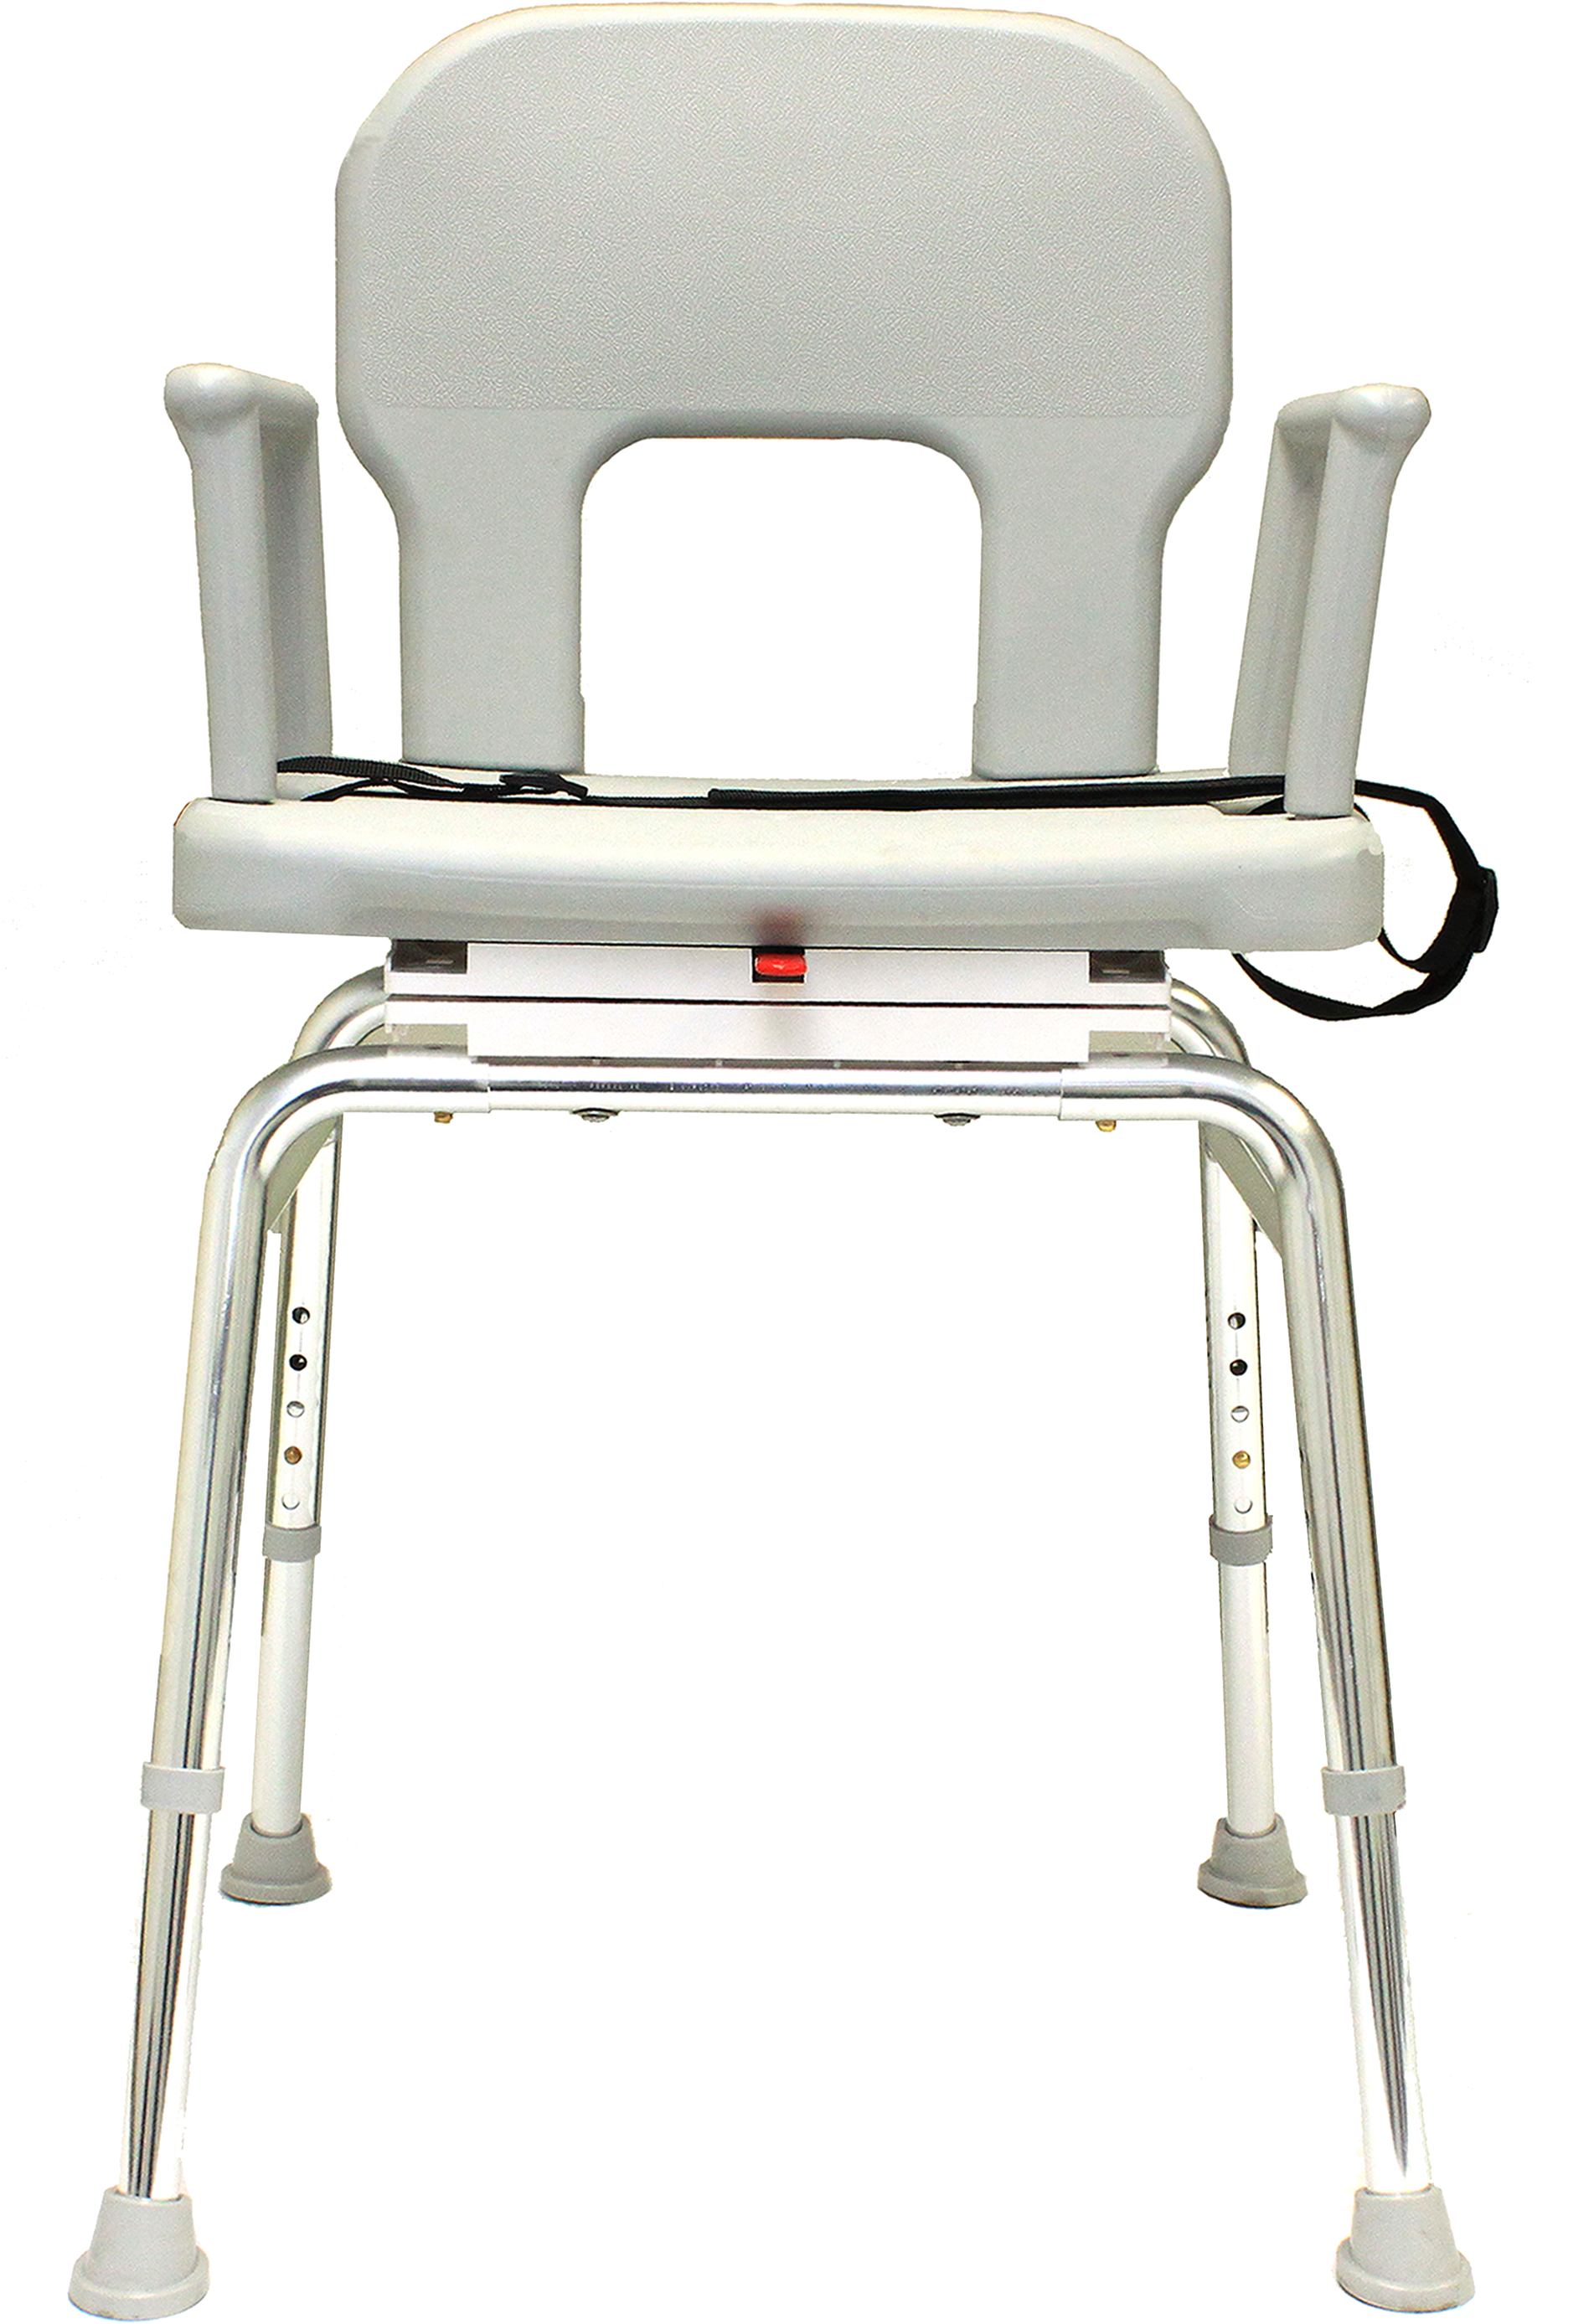 Eagle Bariatric Swivel Shower Chair 55232 at IndeMedical.com